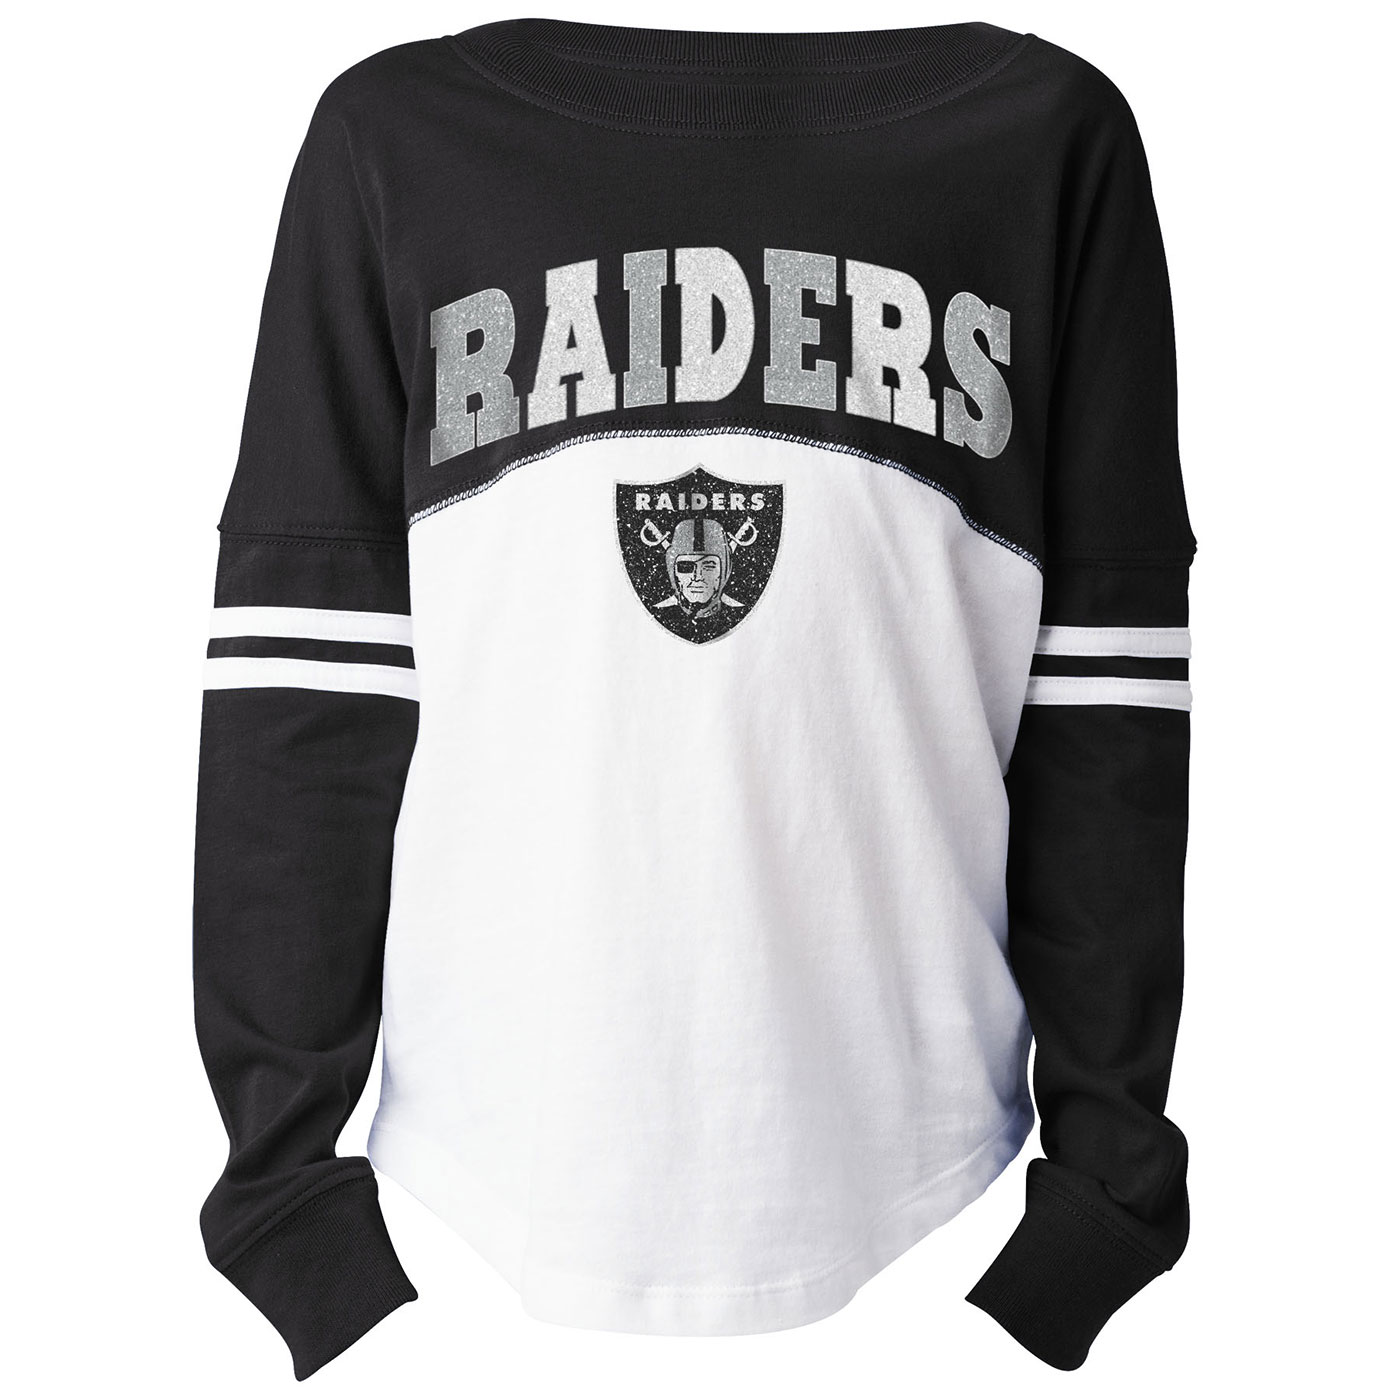 big sale 69a2e ad723 Raiders merchandise cheap - Harveys sale ends